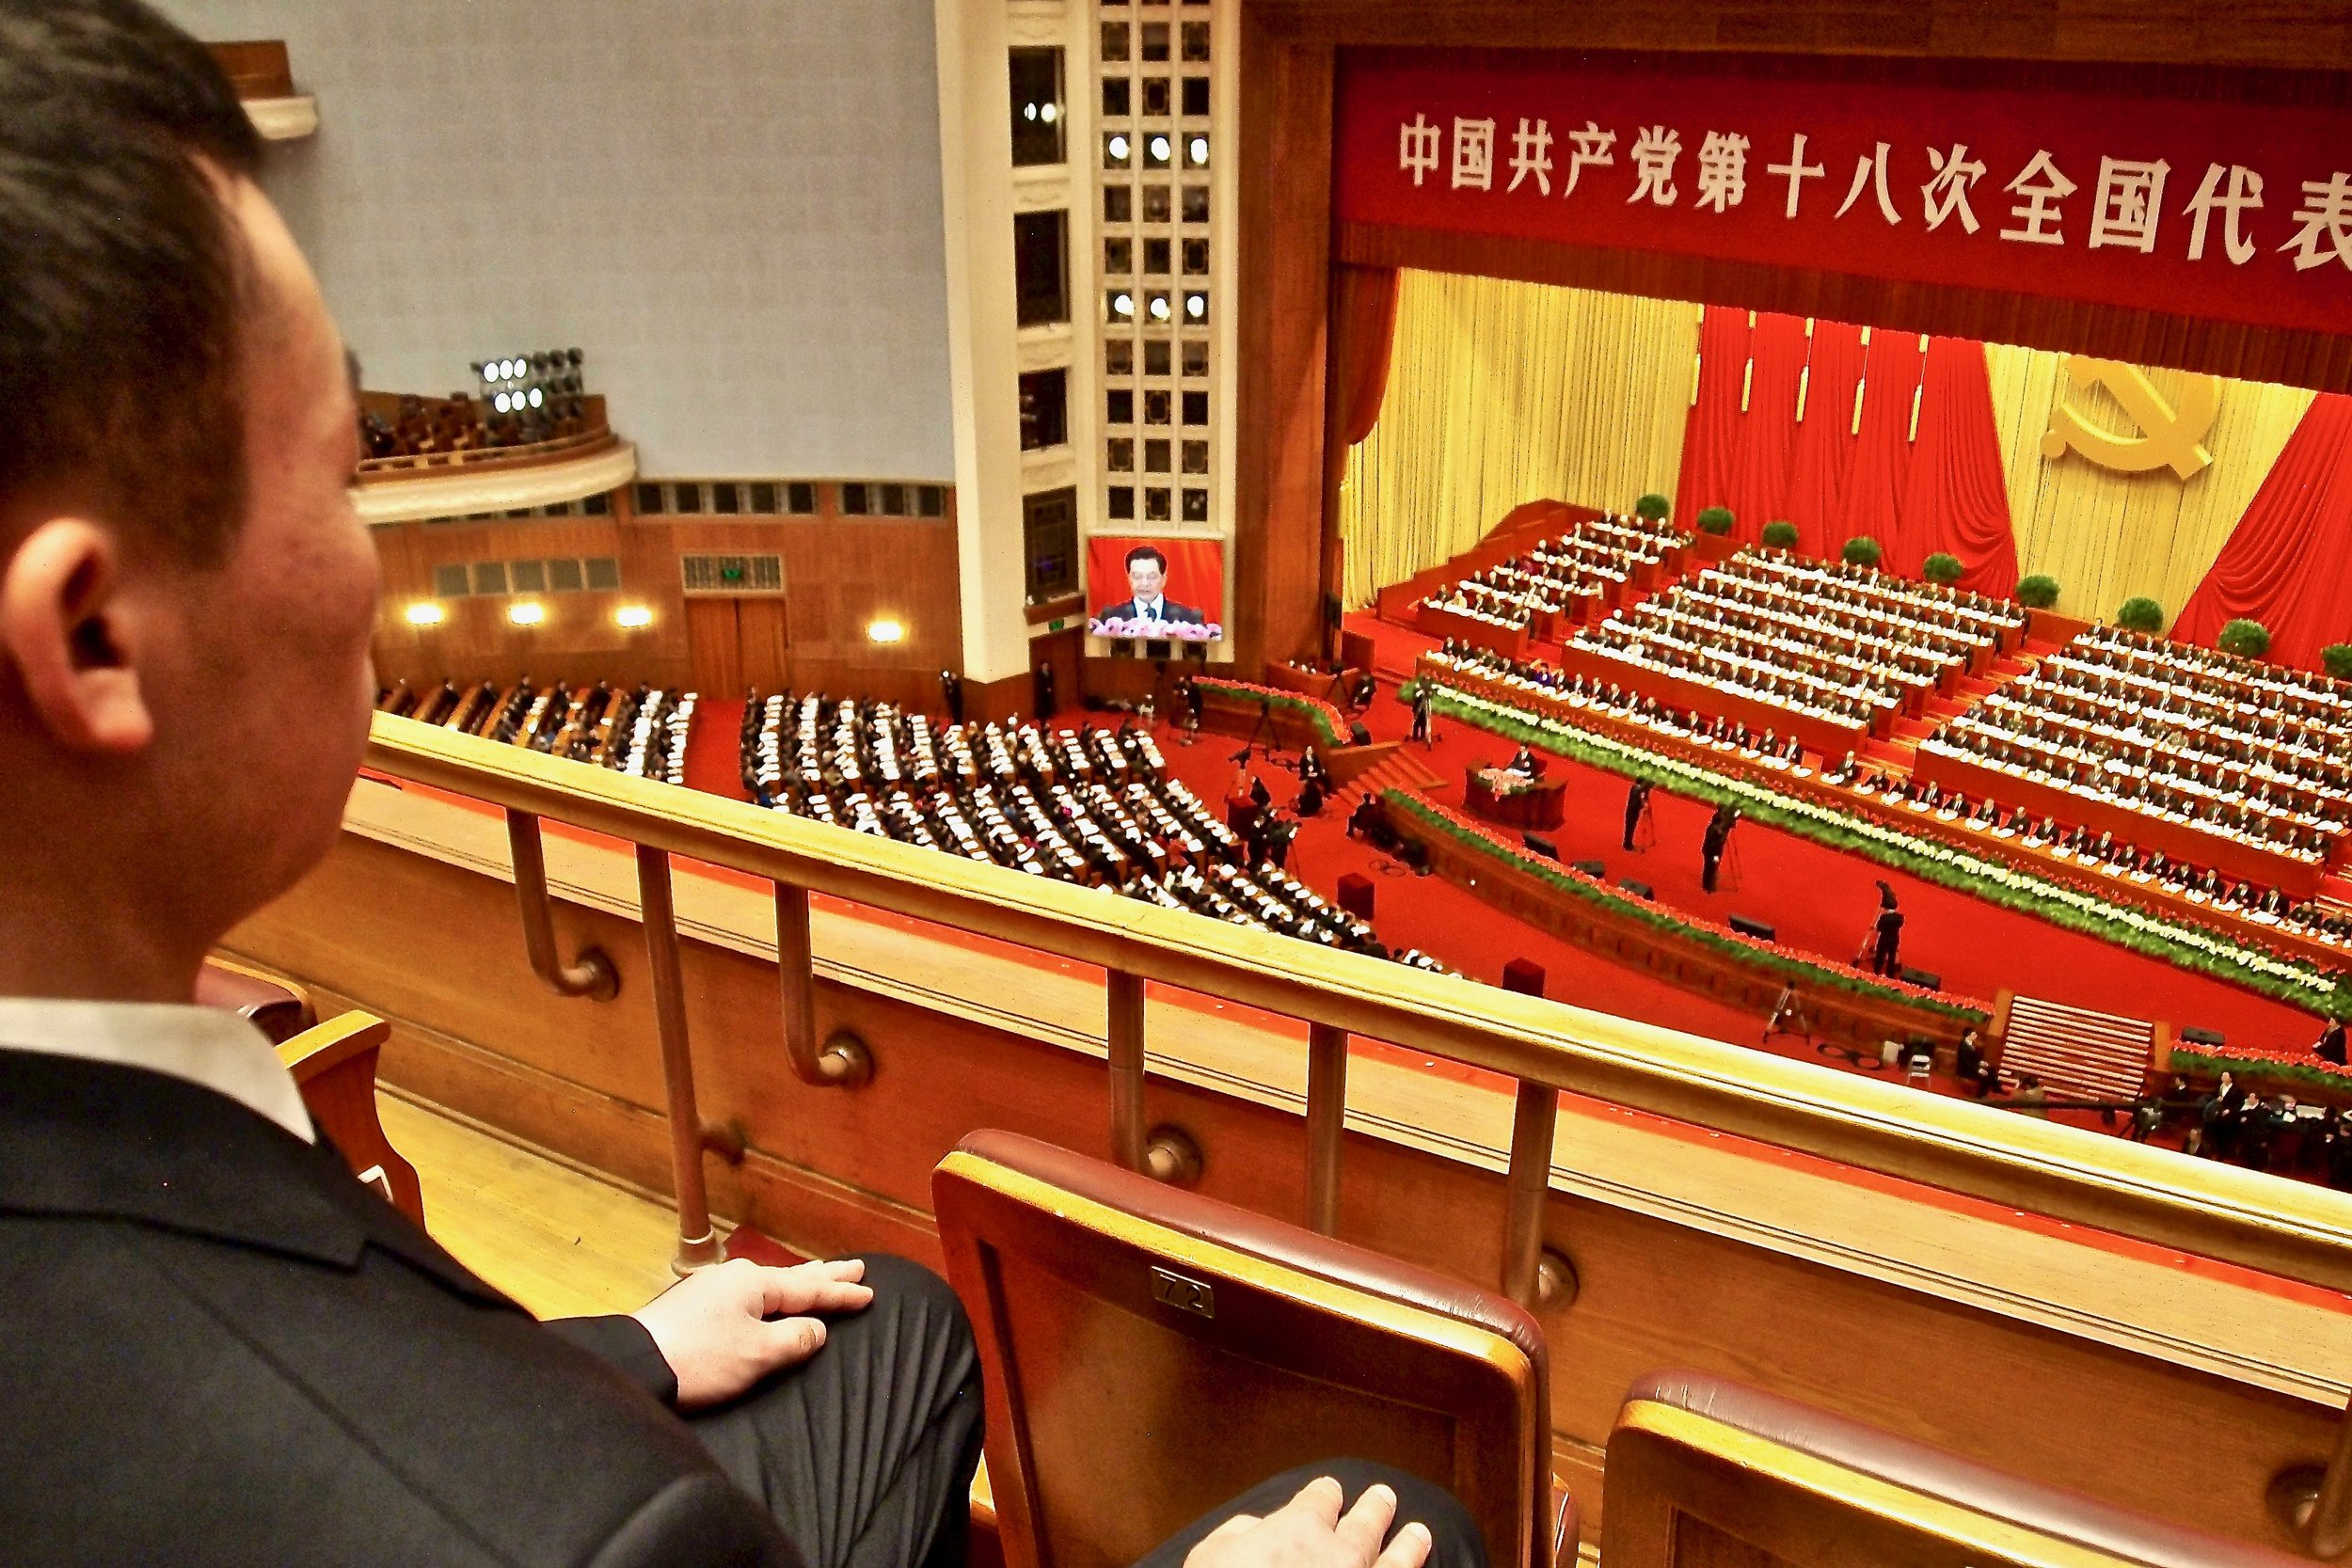 The congress of the Communist Party of China in the Great Hall of the People in Beijing, China. Photo: (C) Remko Tanis